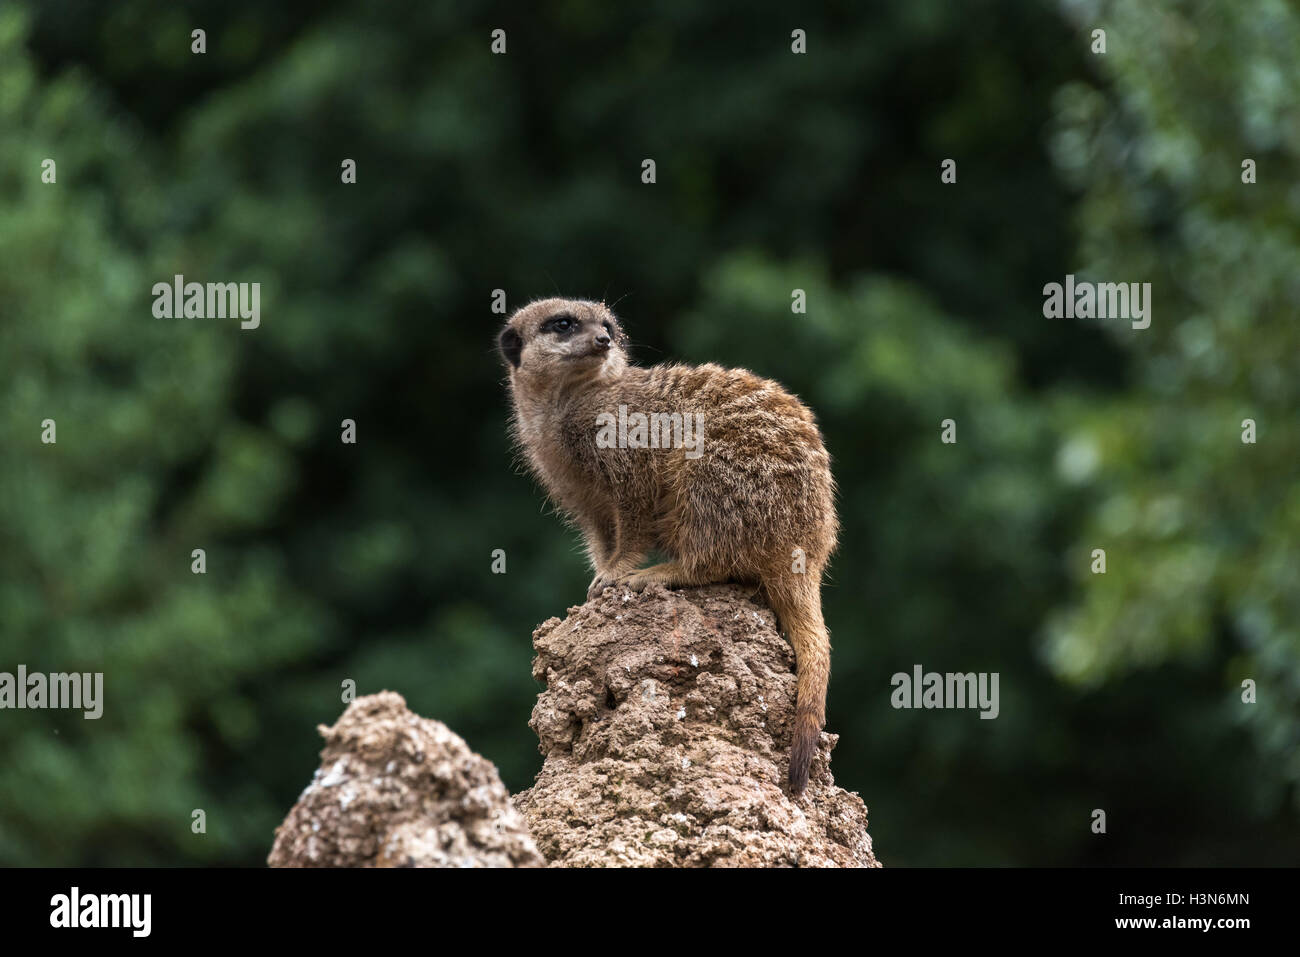 Meerkat looking out - Stock Image